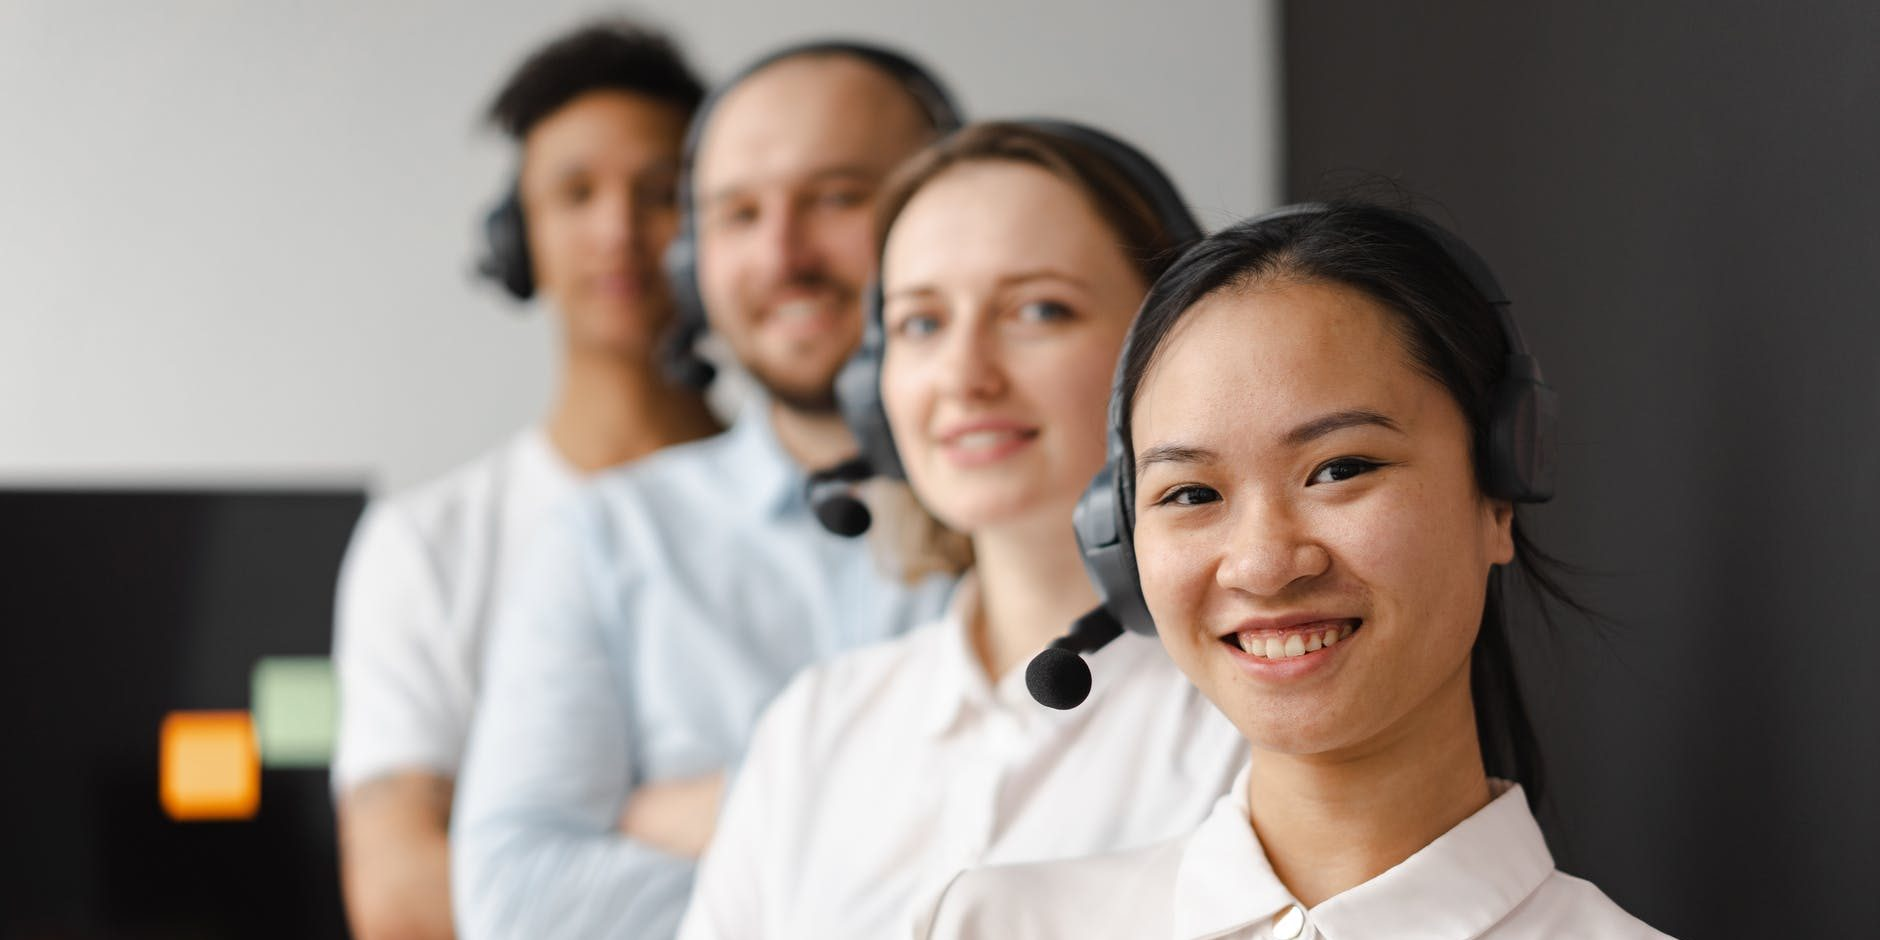 outsource staff with headsets smiling - passionately working in a call center